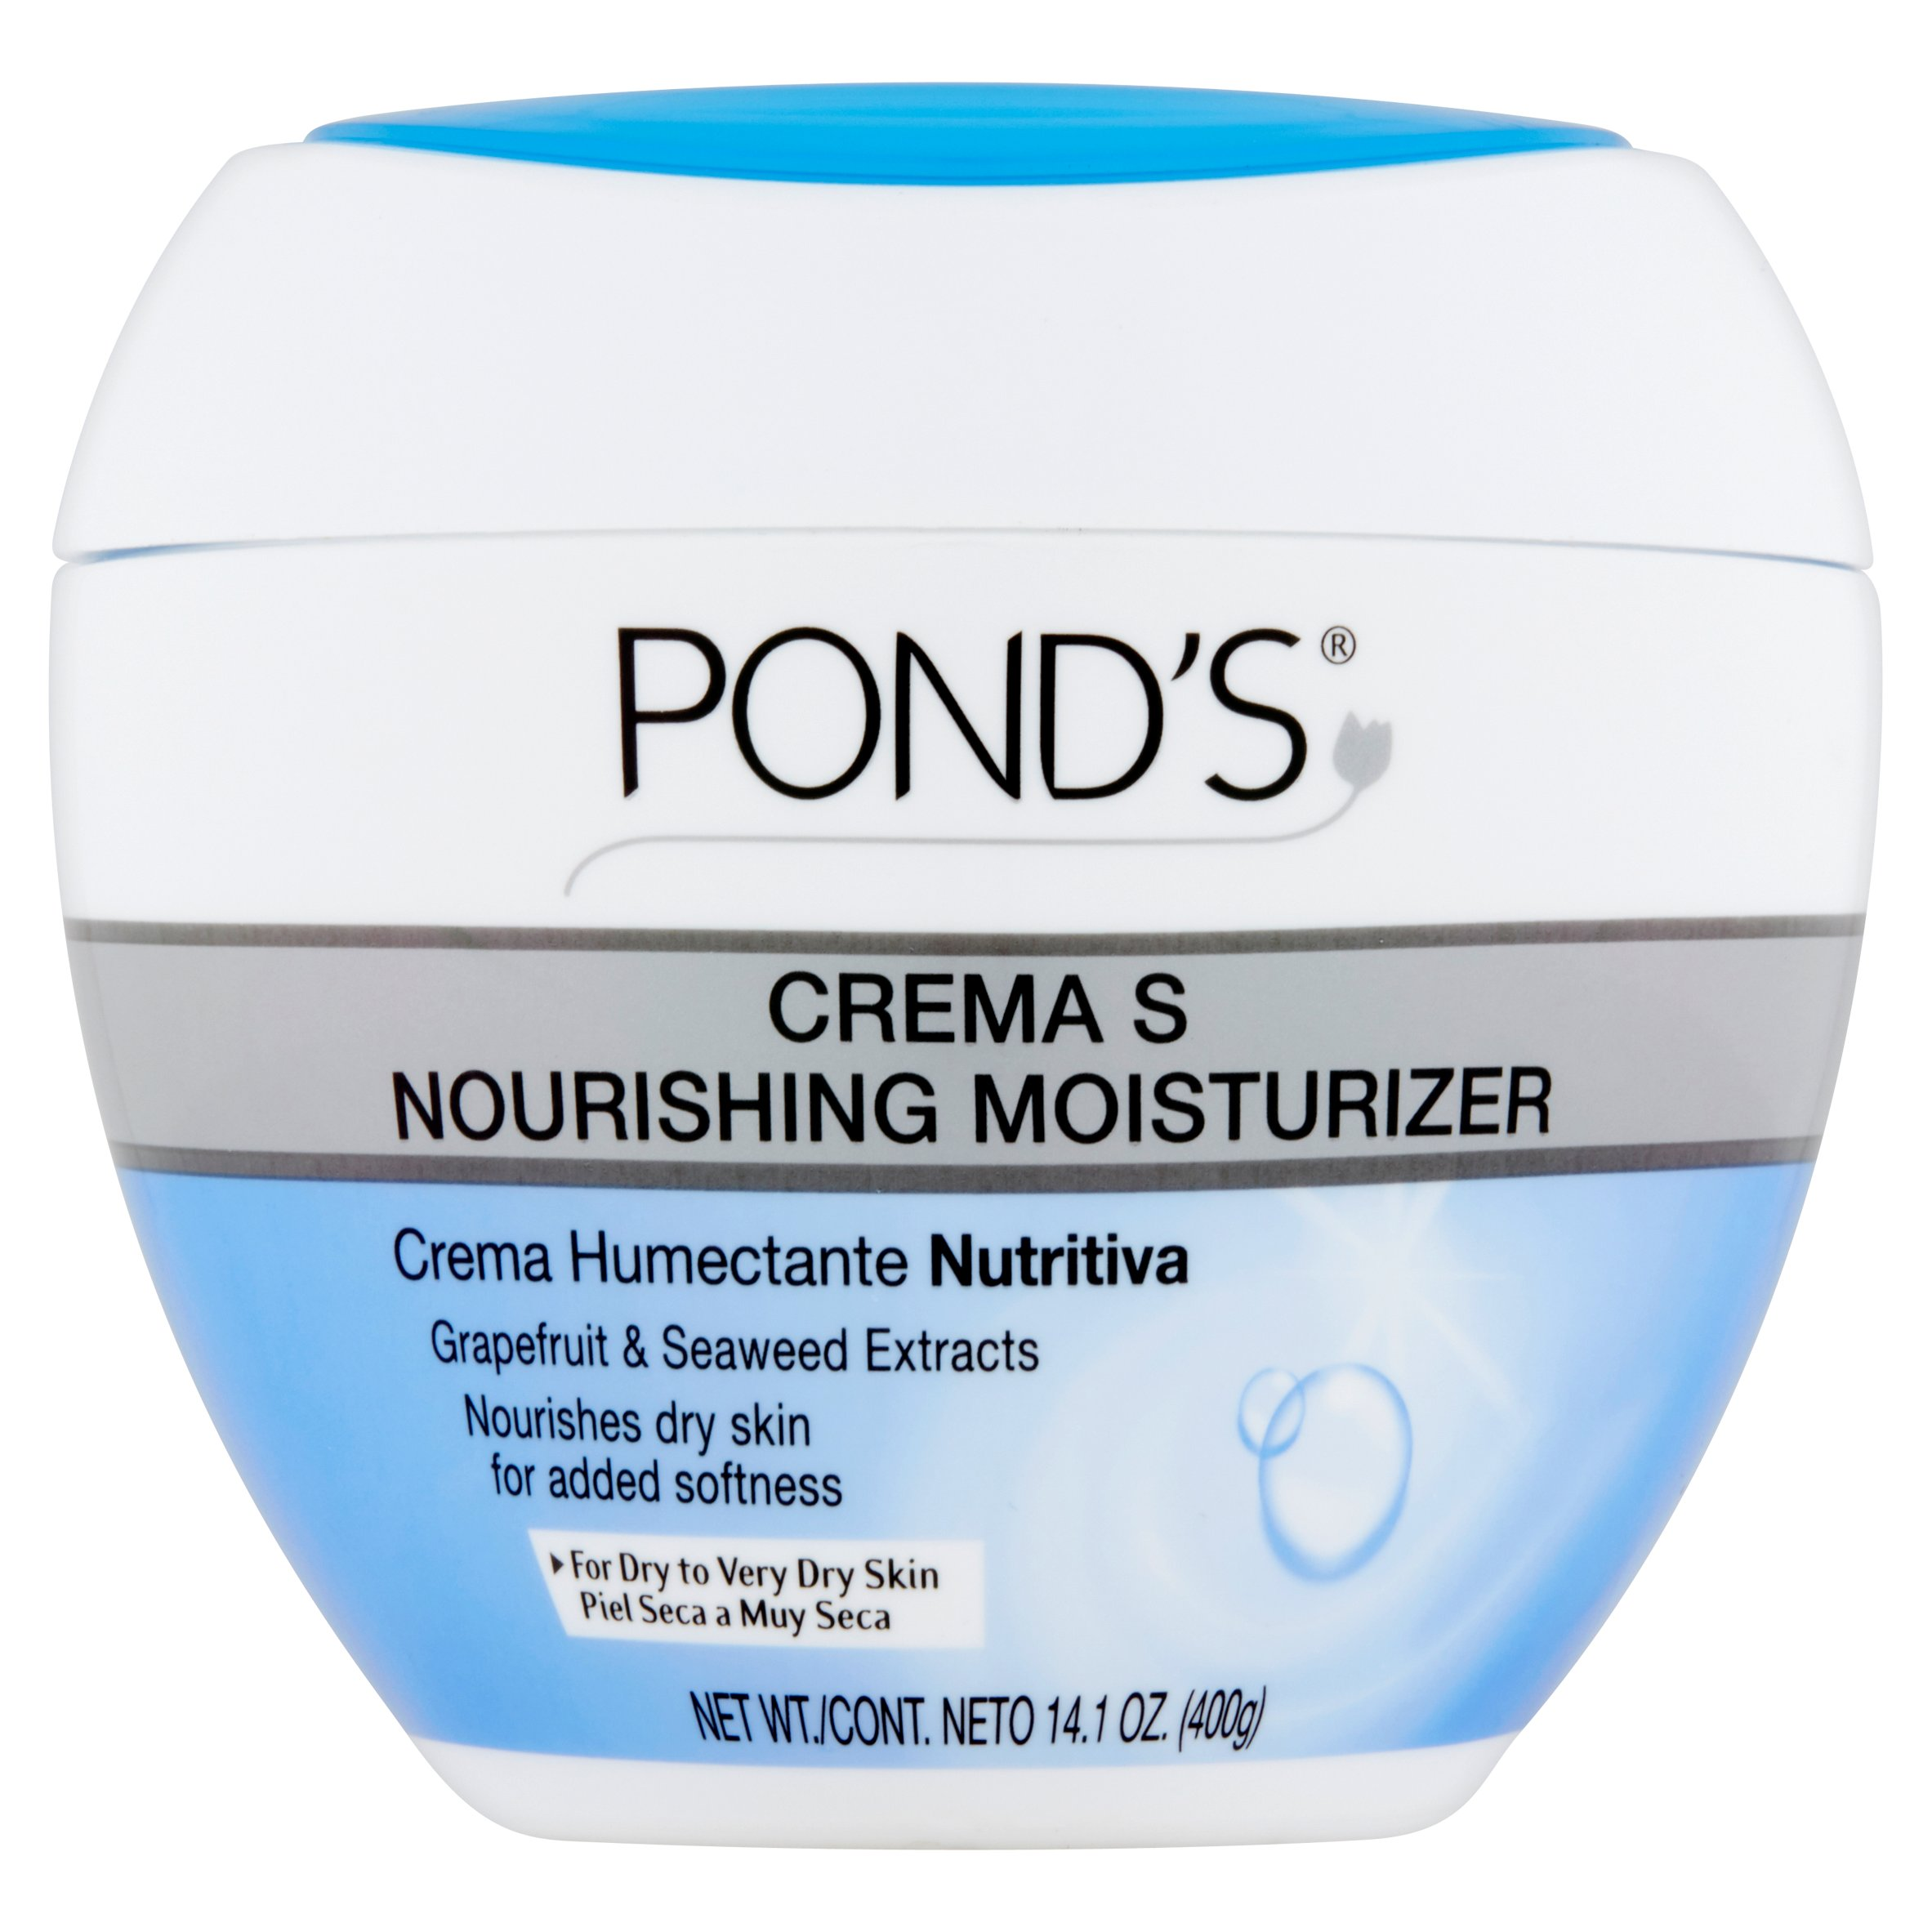 Pond's Crema S Nourishing Moisturizing Cream 14.1 oz by Unilever